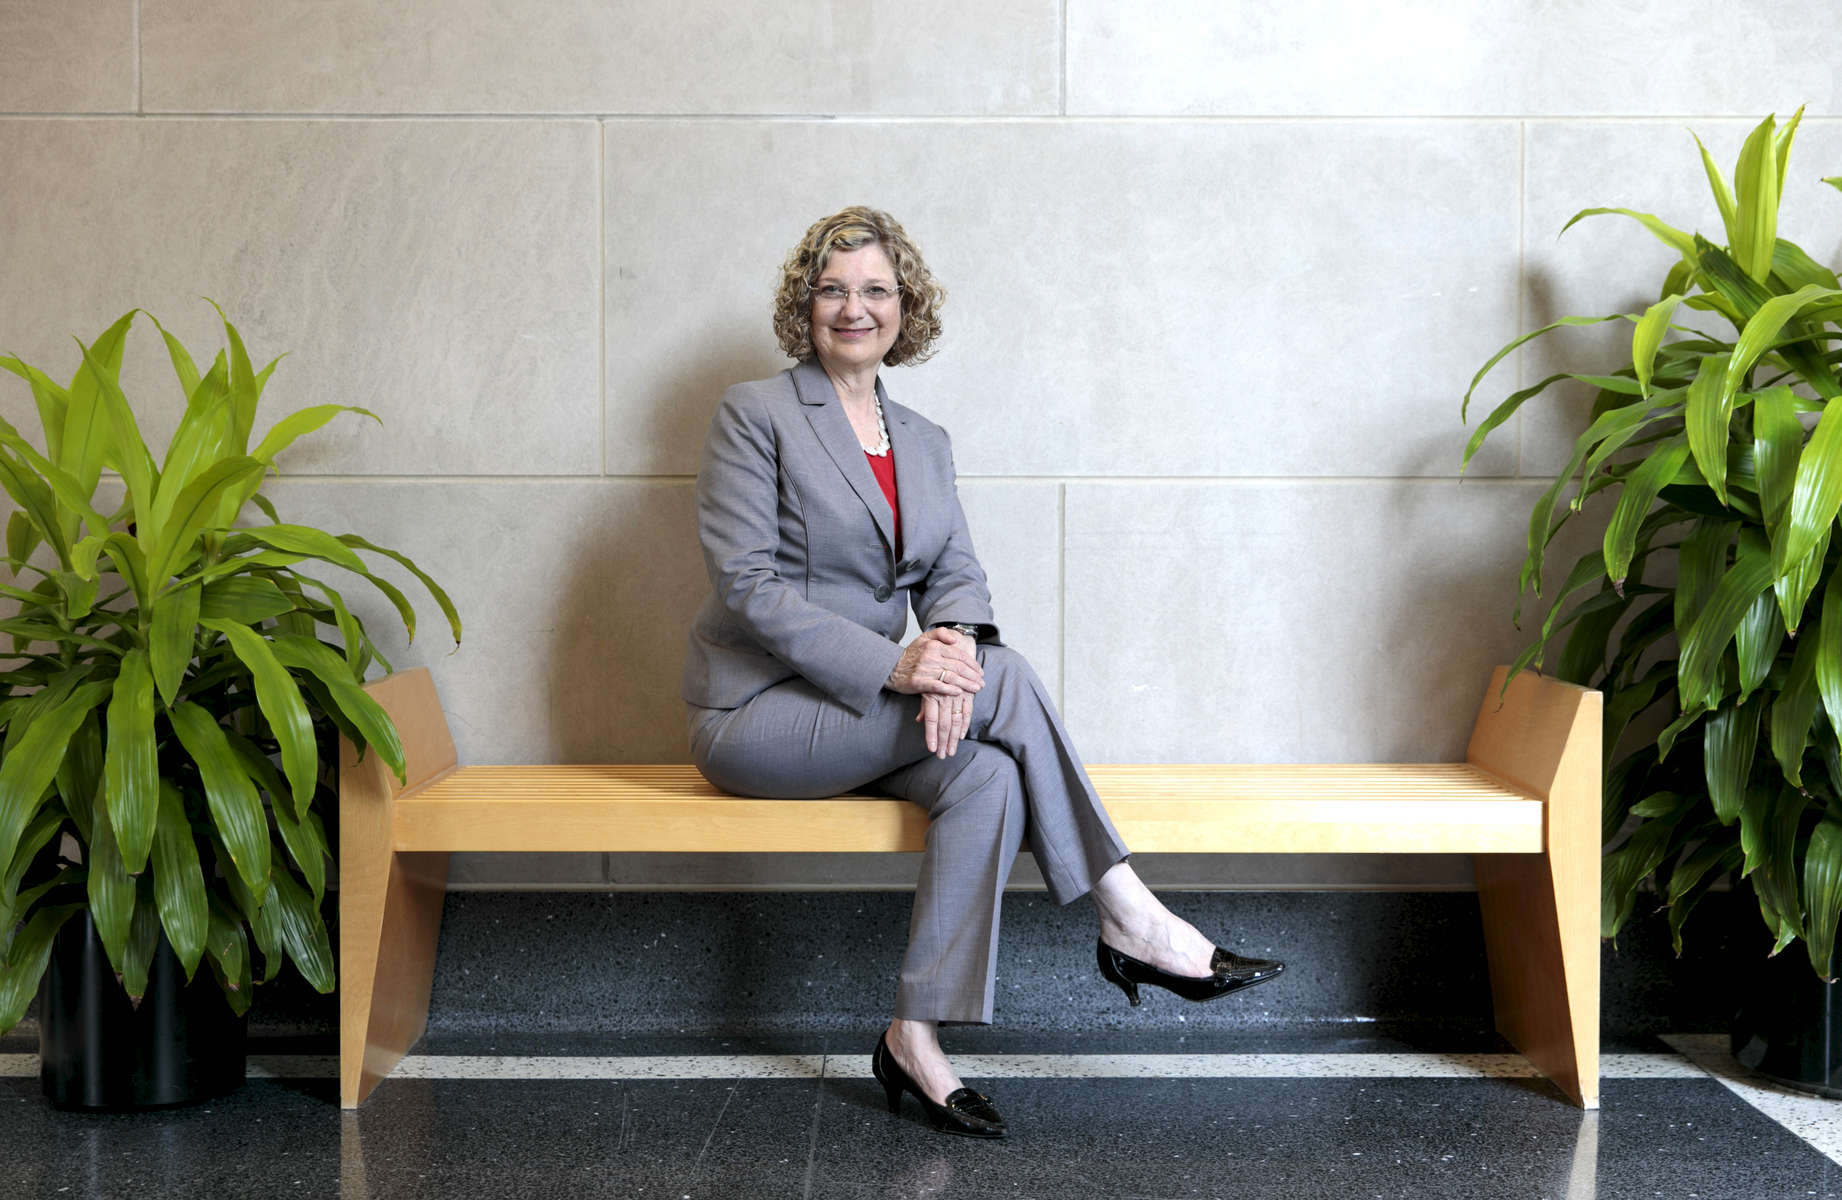 Idalene Kesner, Dean of the Kelley School of Business at Indiana University, Bloomington, Indiana. Photo/ Chris Bergin